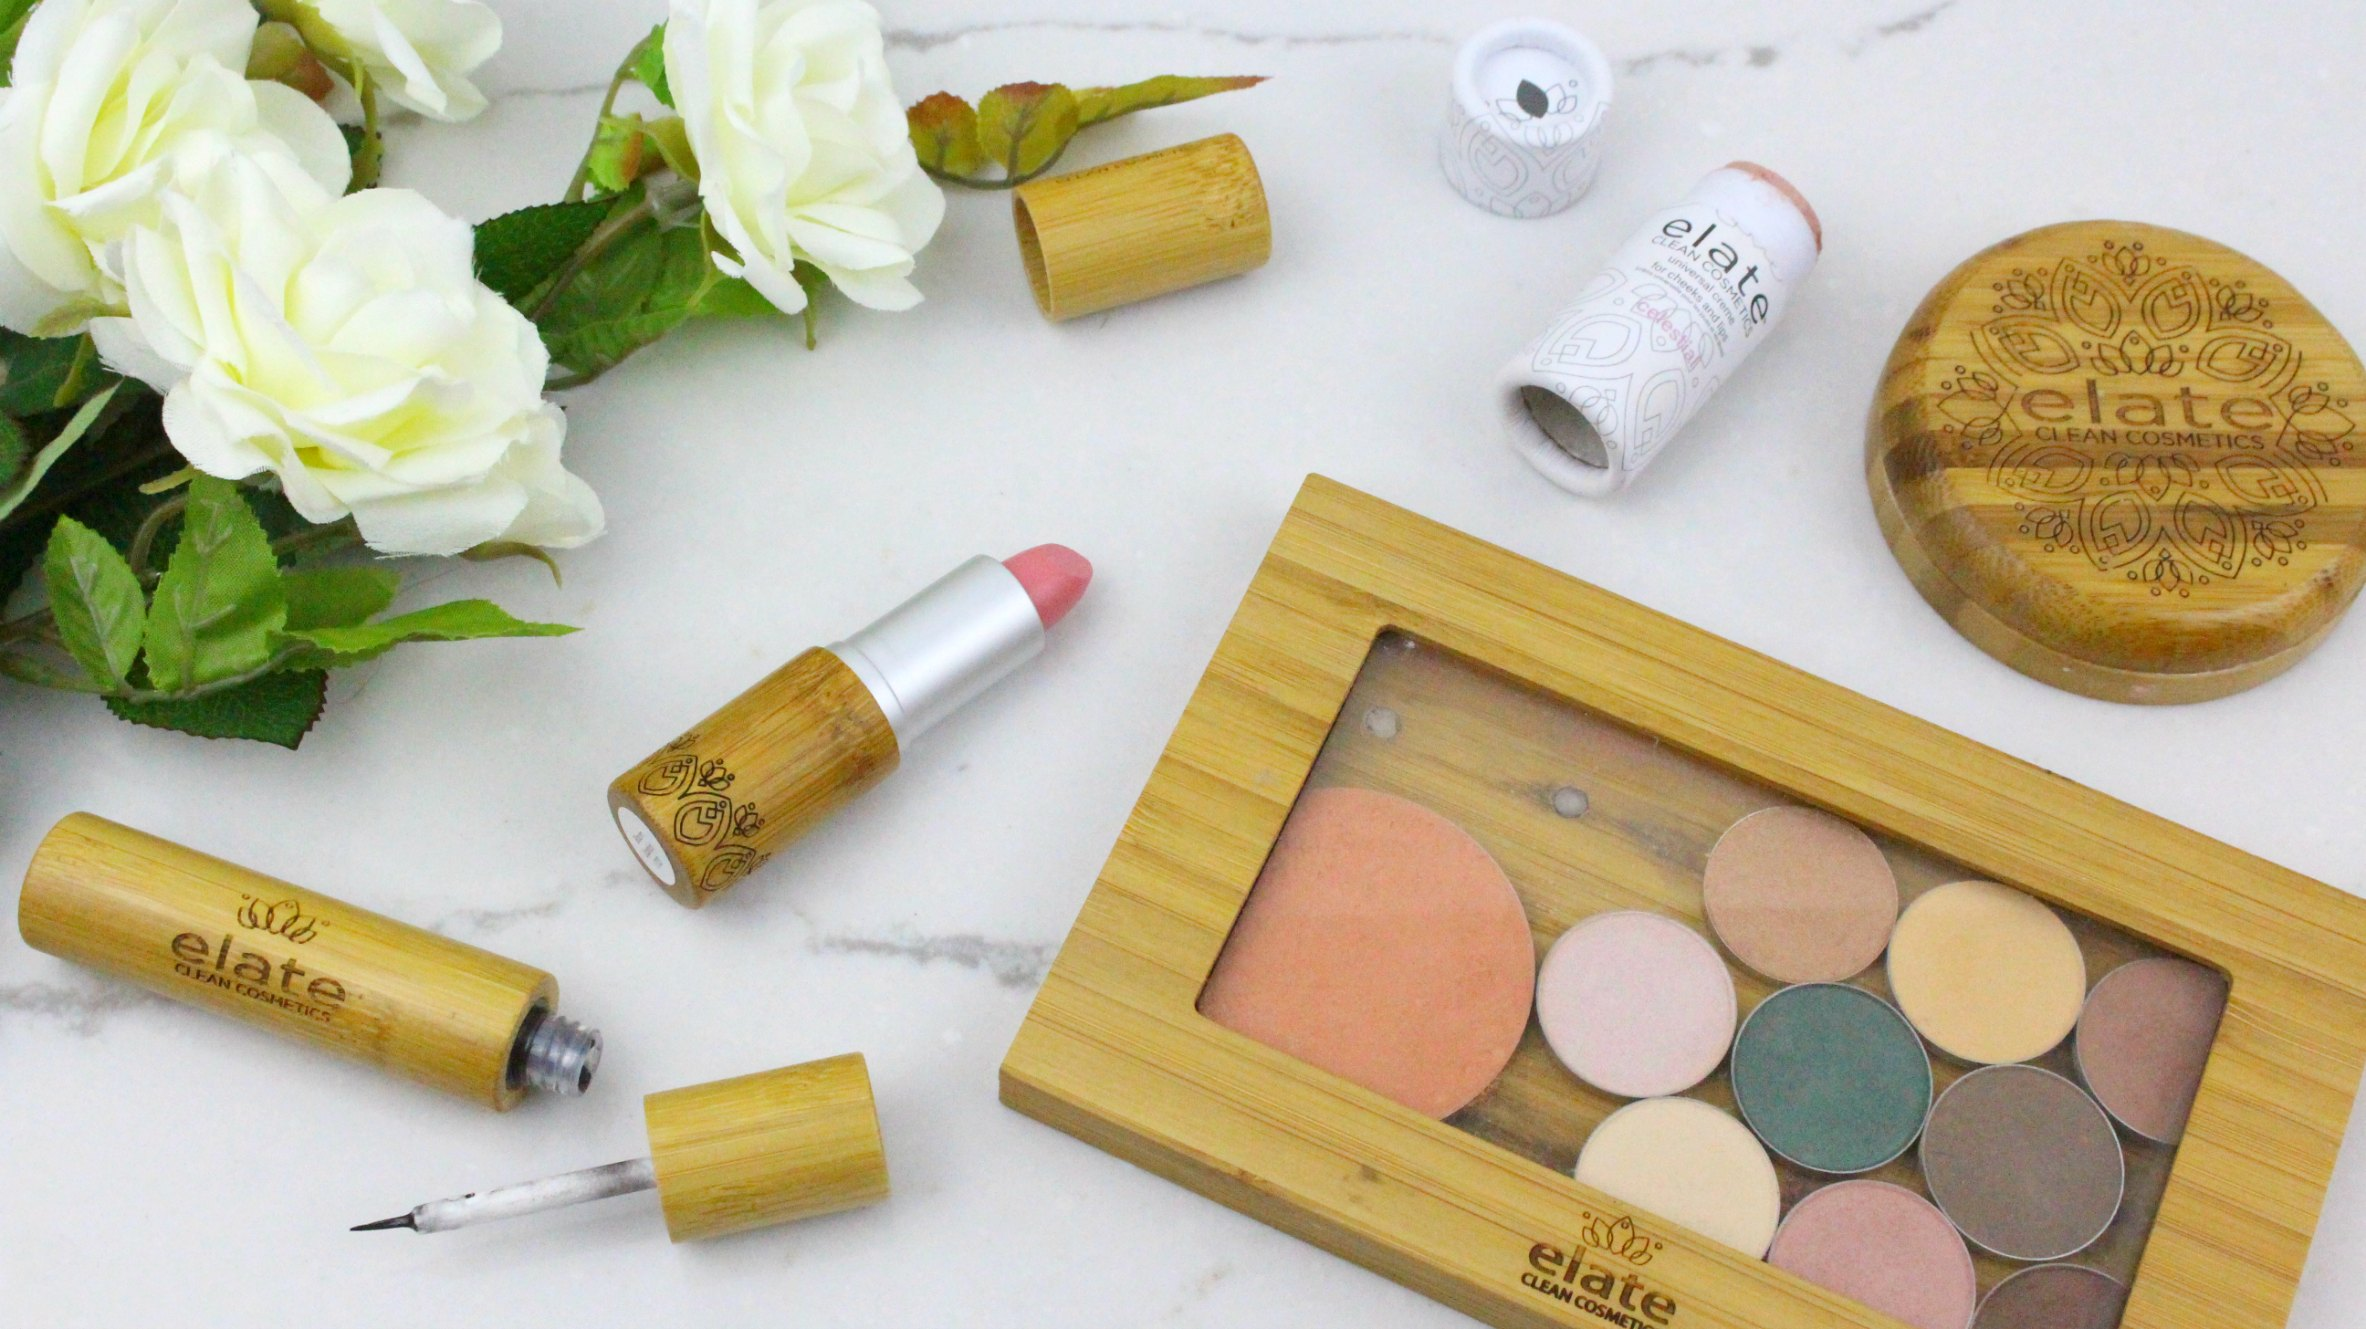 Girls Night Out Makeup Tutorial using primarily all natural, cruelty free cosmetic products.